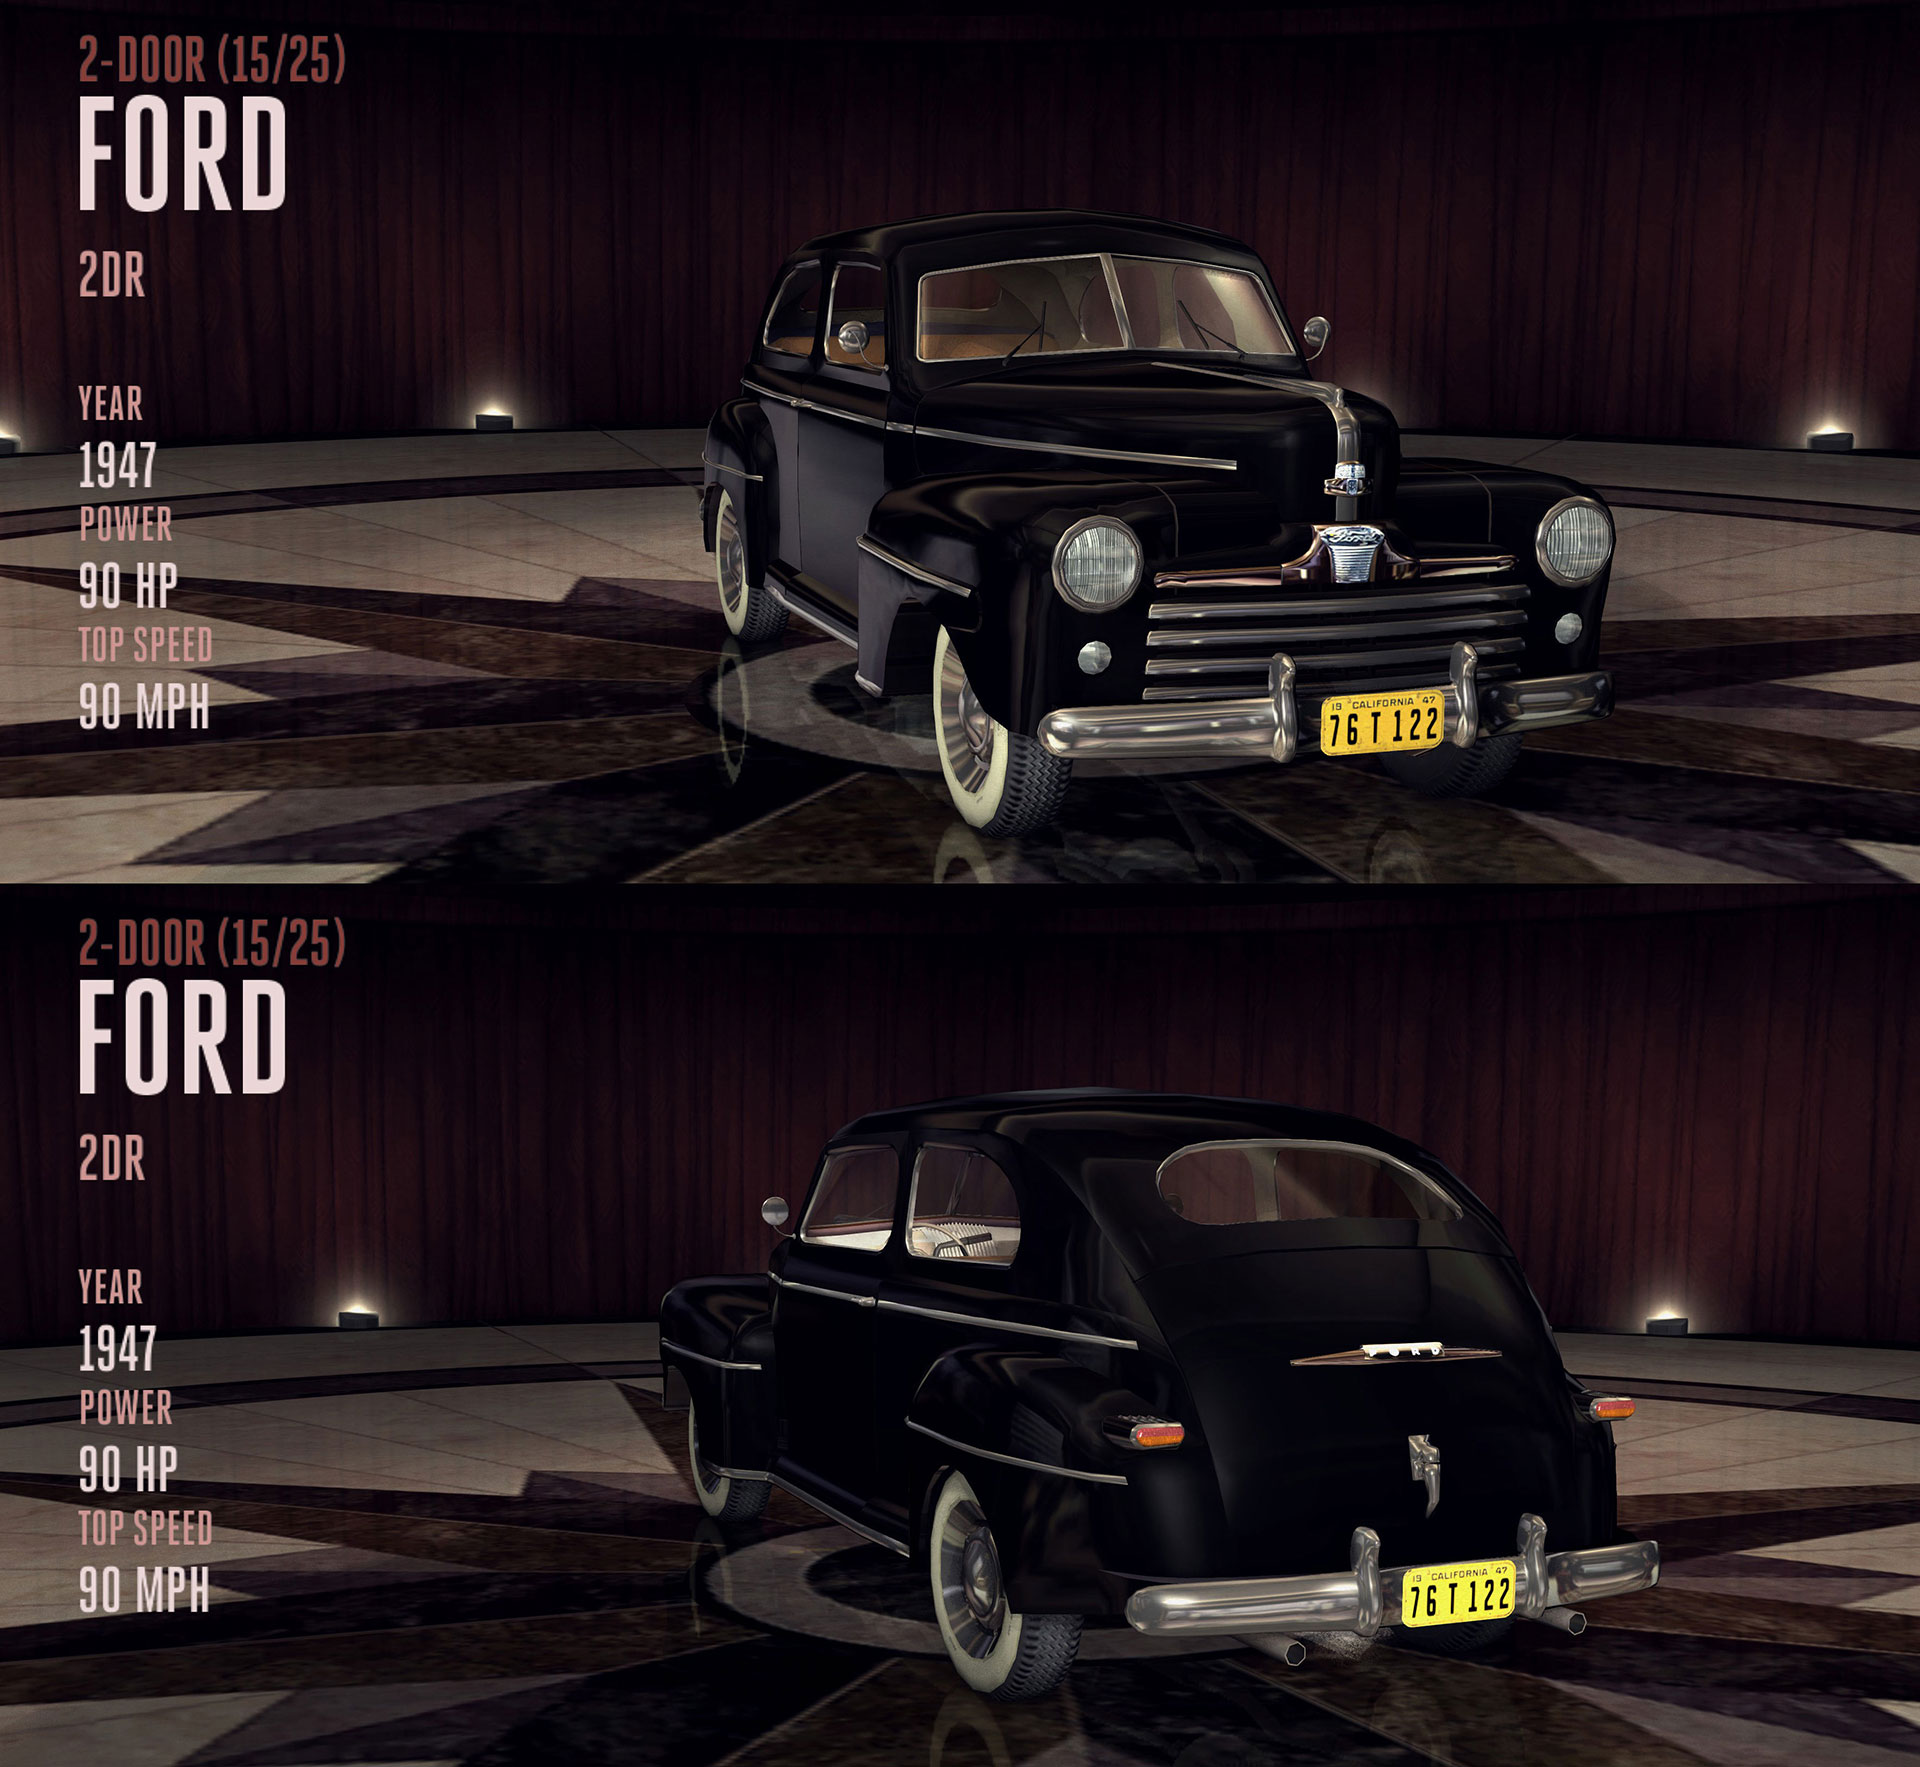 Ford 2DR